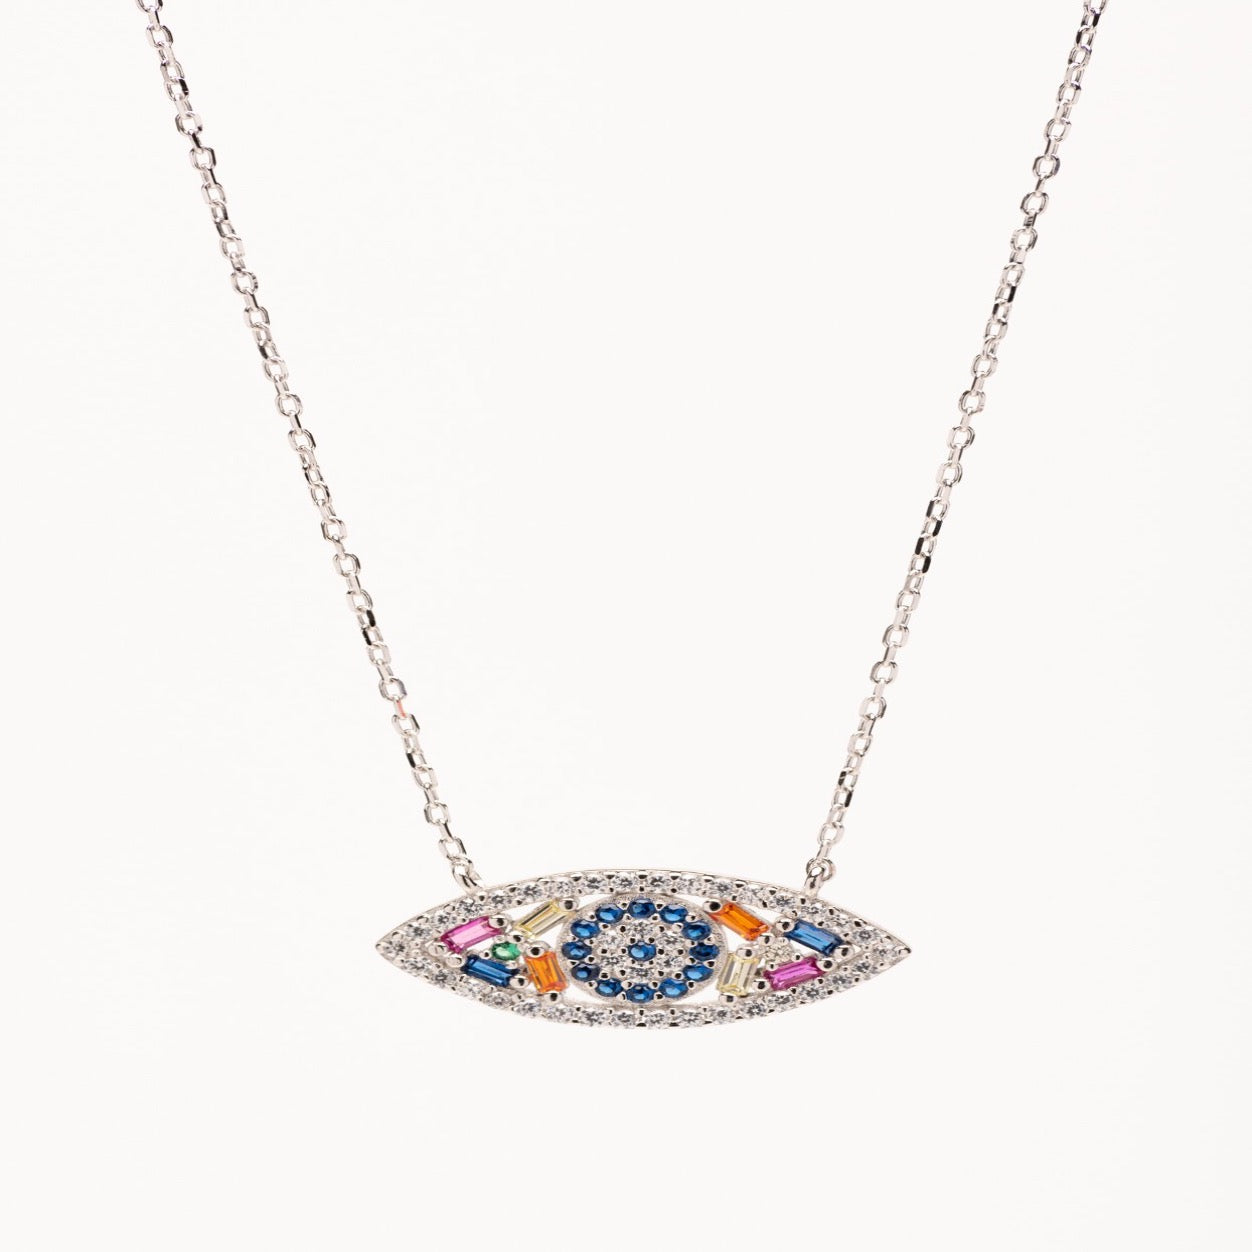 GABRIELLE-multicolore eye necklace